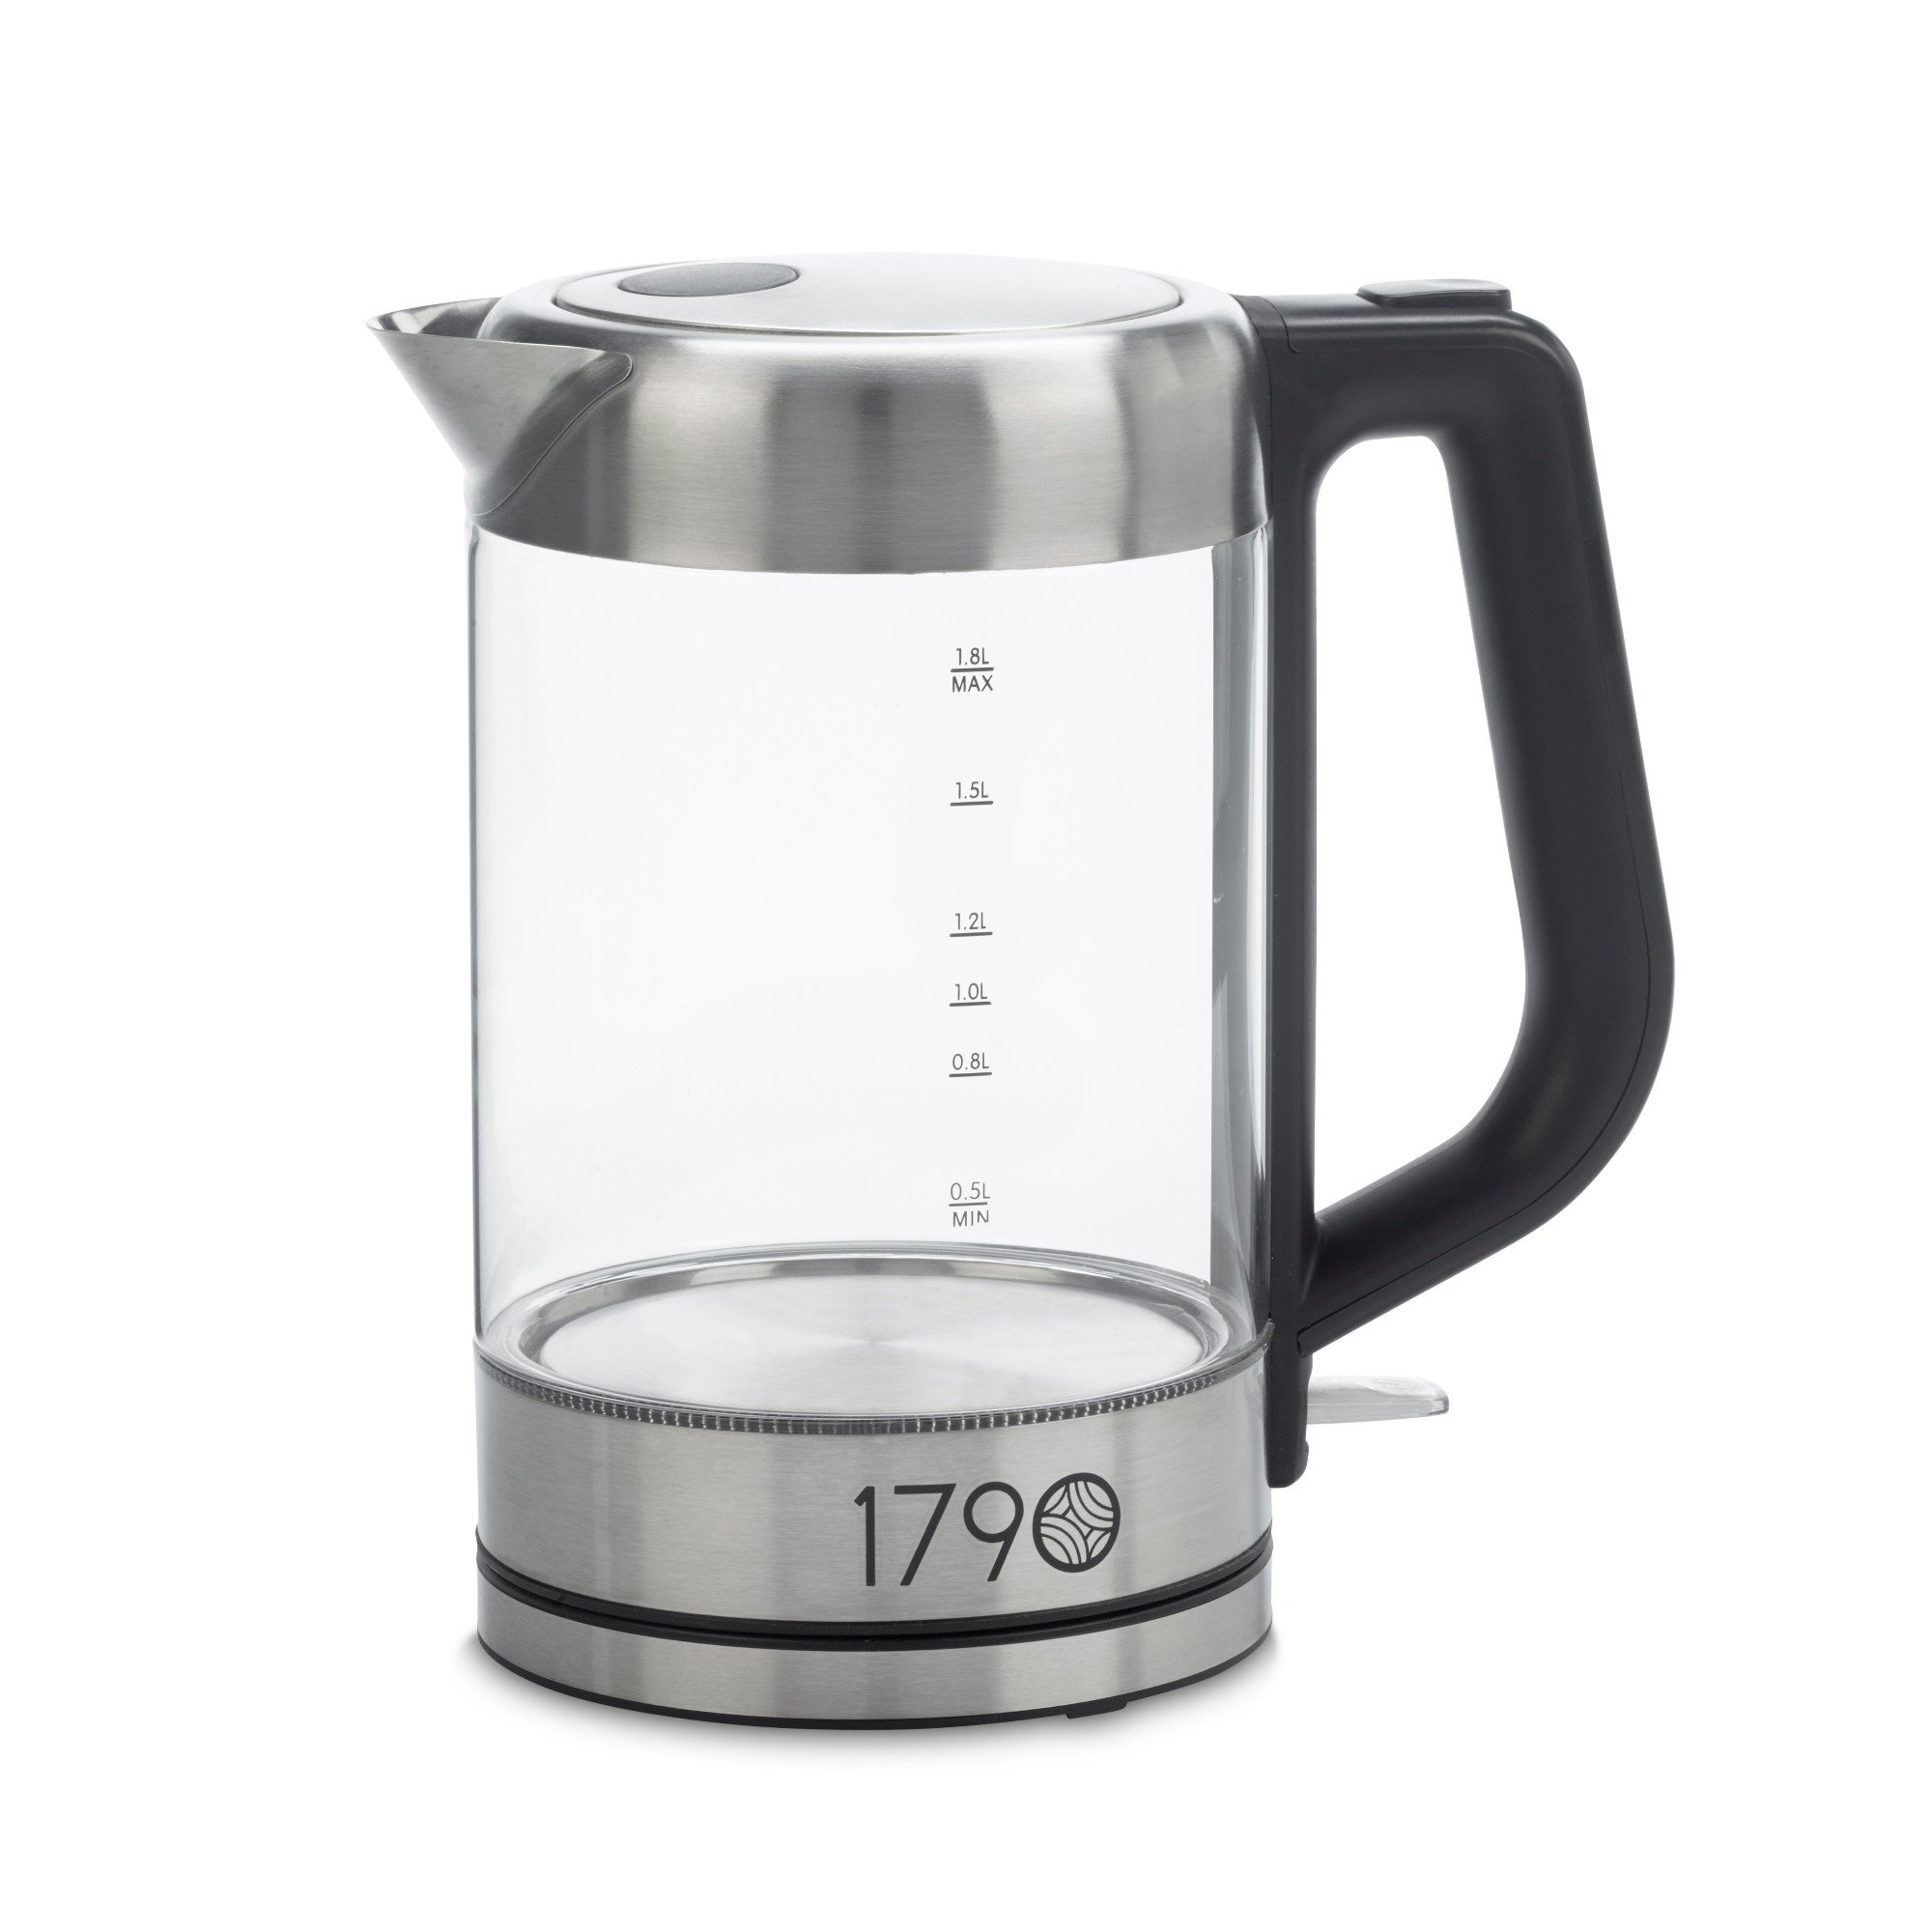 1790 Electric Kettle 1.8 Liter - (0.5 Gallon) BPA Free, Cordless, Stainless Steel Finish - The Perfect Electric Tea Kettle & Water Boiler